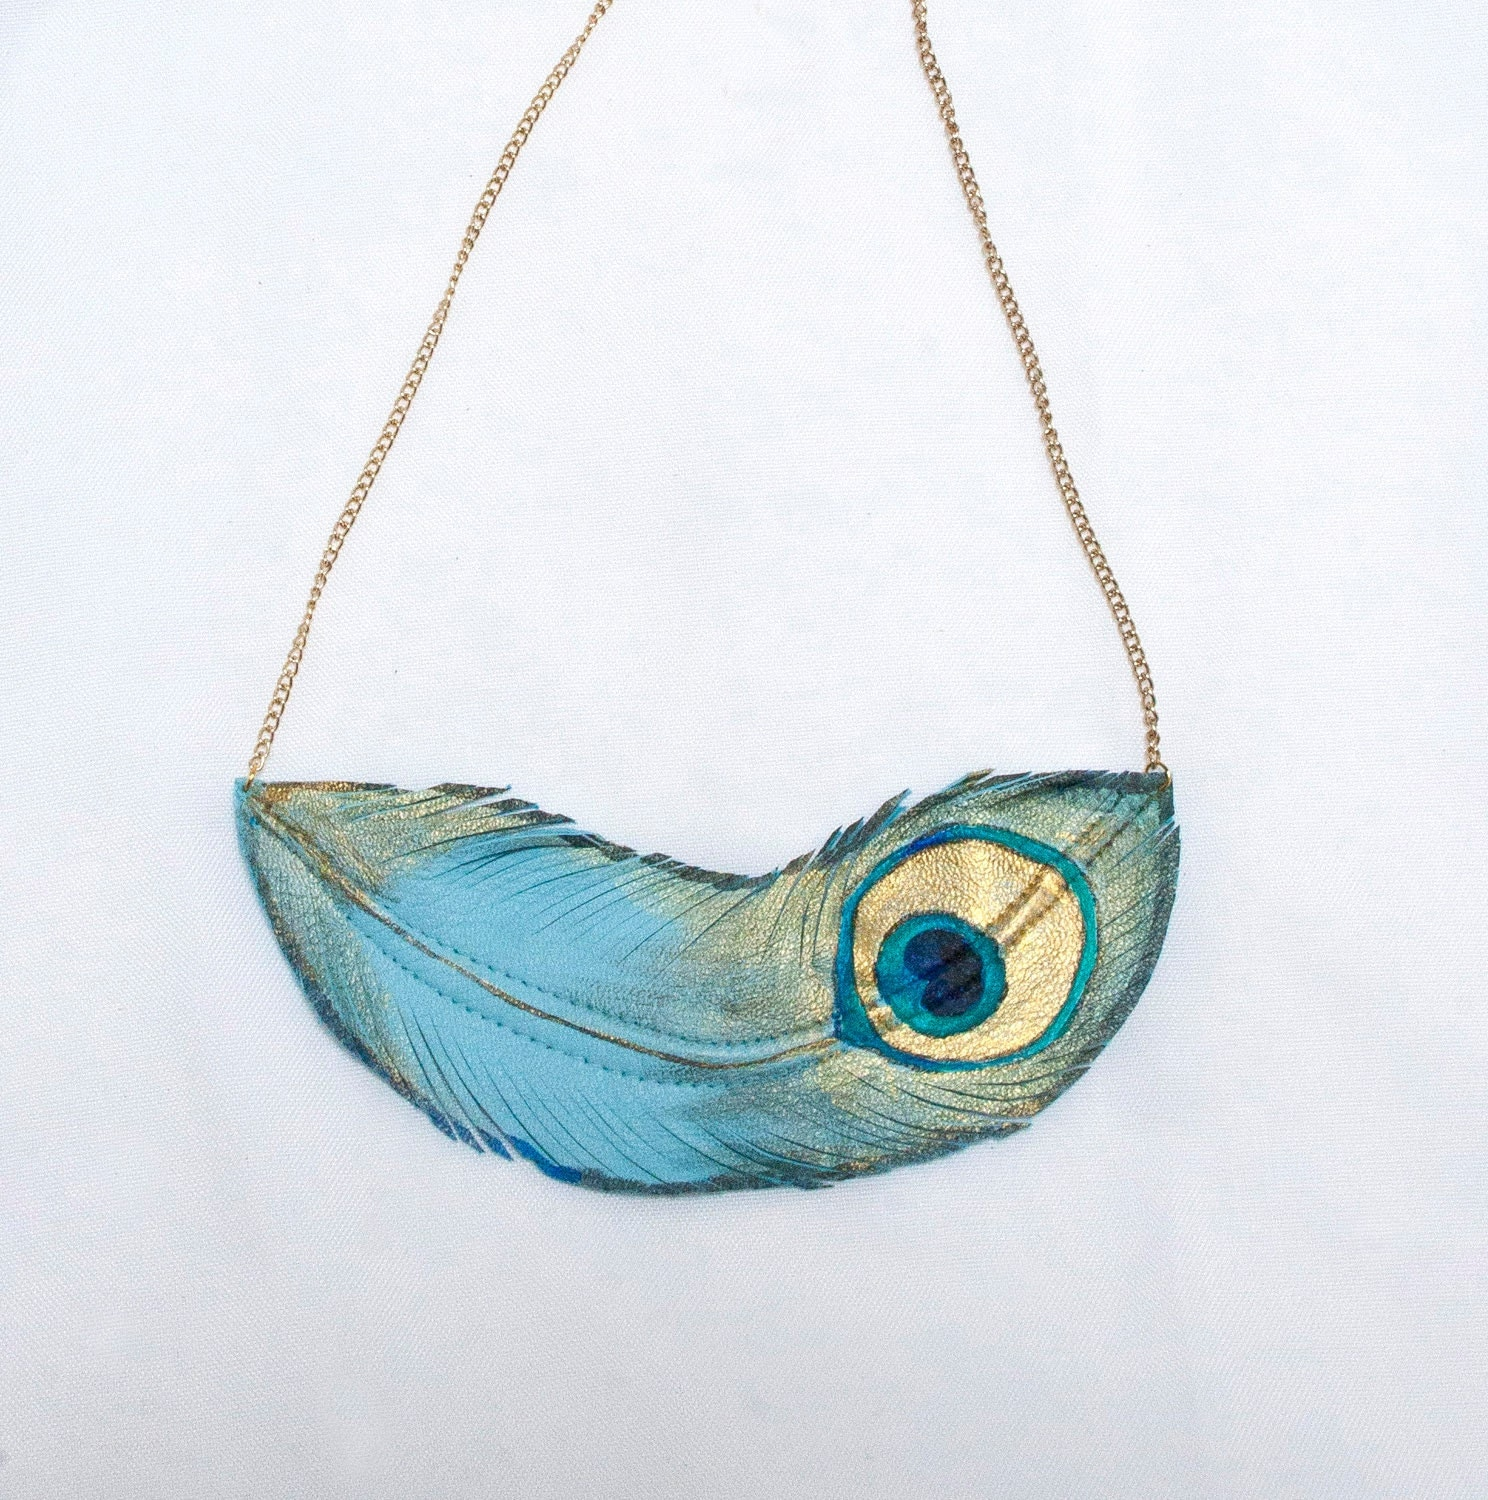 PEACOCK Feather. Handpainted Leather Feather Necklace. Free shipping worldwide - TZain